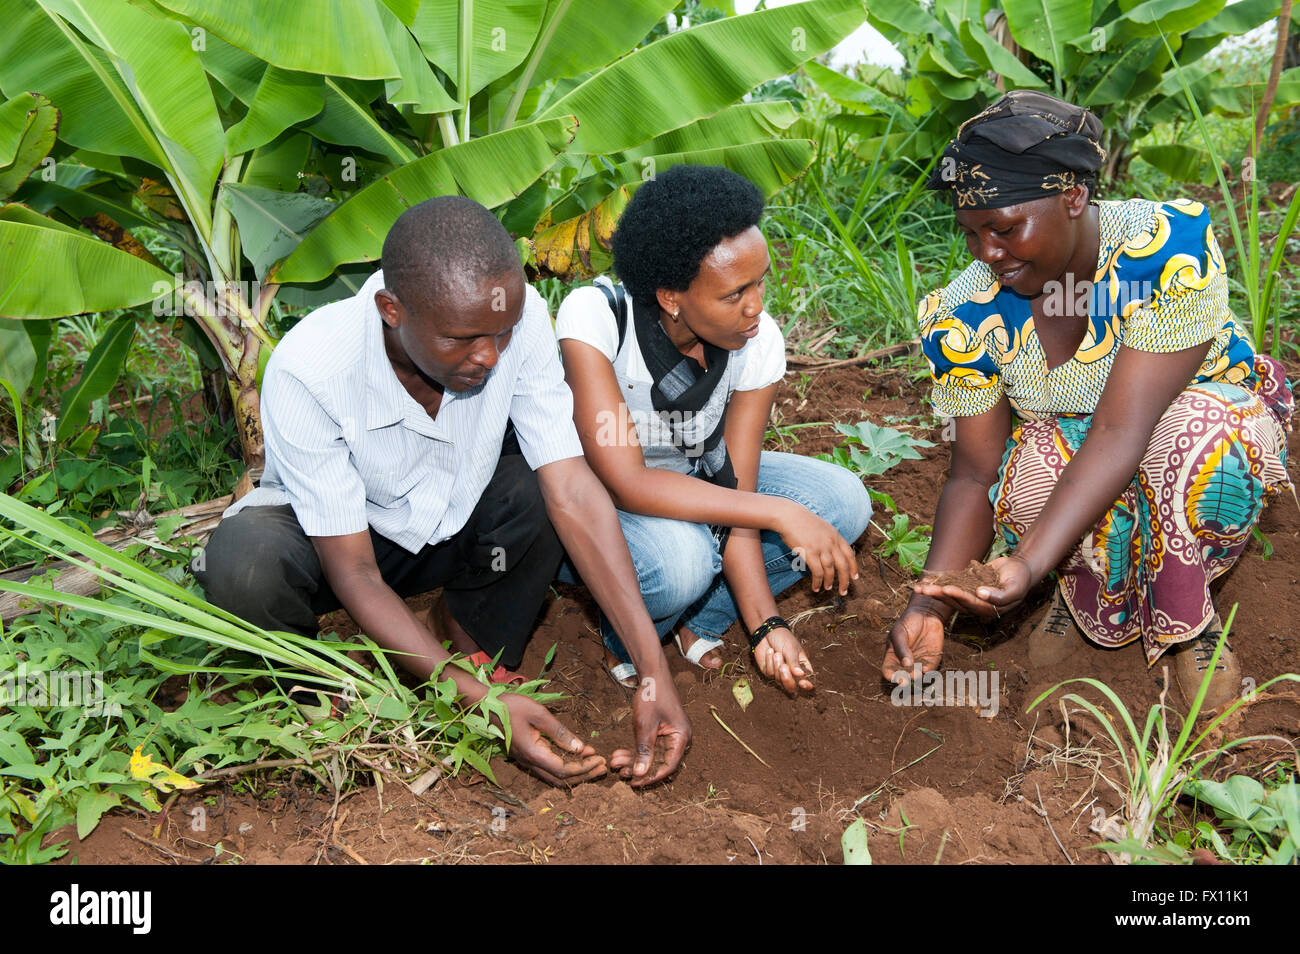 Rwandan agricultural experts looking at soil with a local farmer and discussing how to improve it. Rwanda. - Stock Image